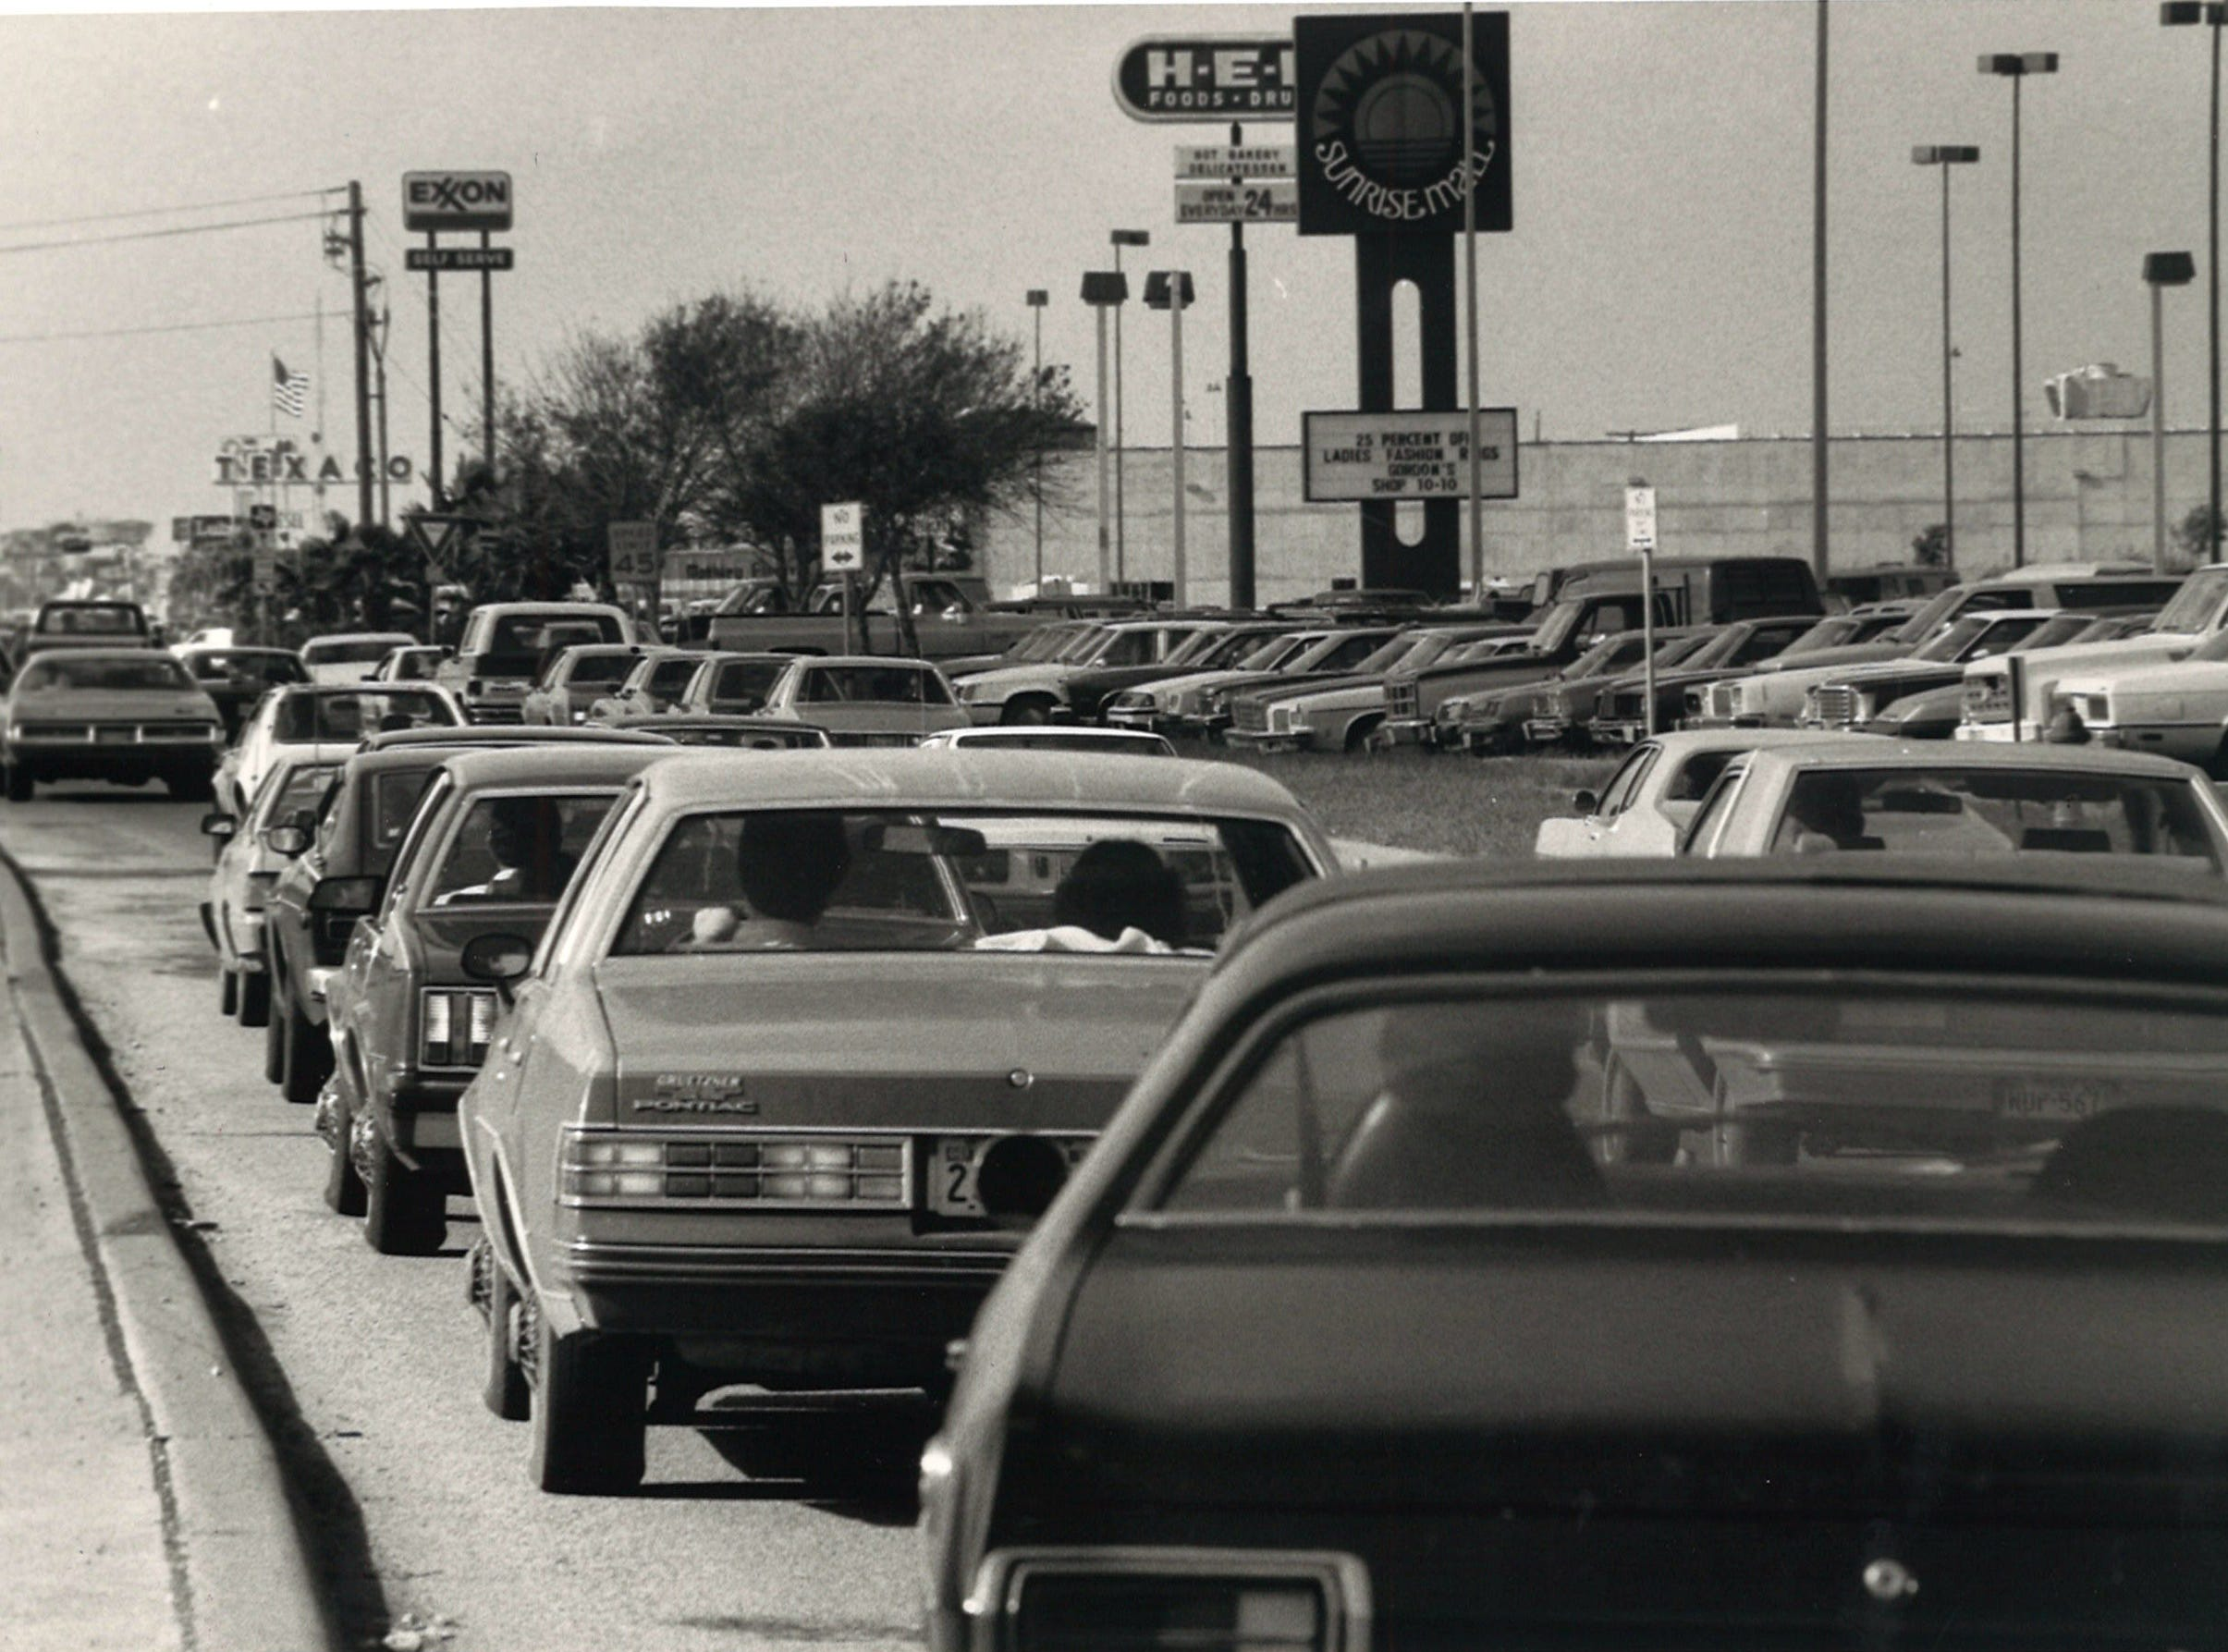 The traffic jam before Christmas at Sunrise Mall on Dec. 24, 1984.